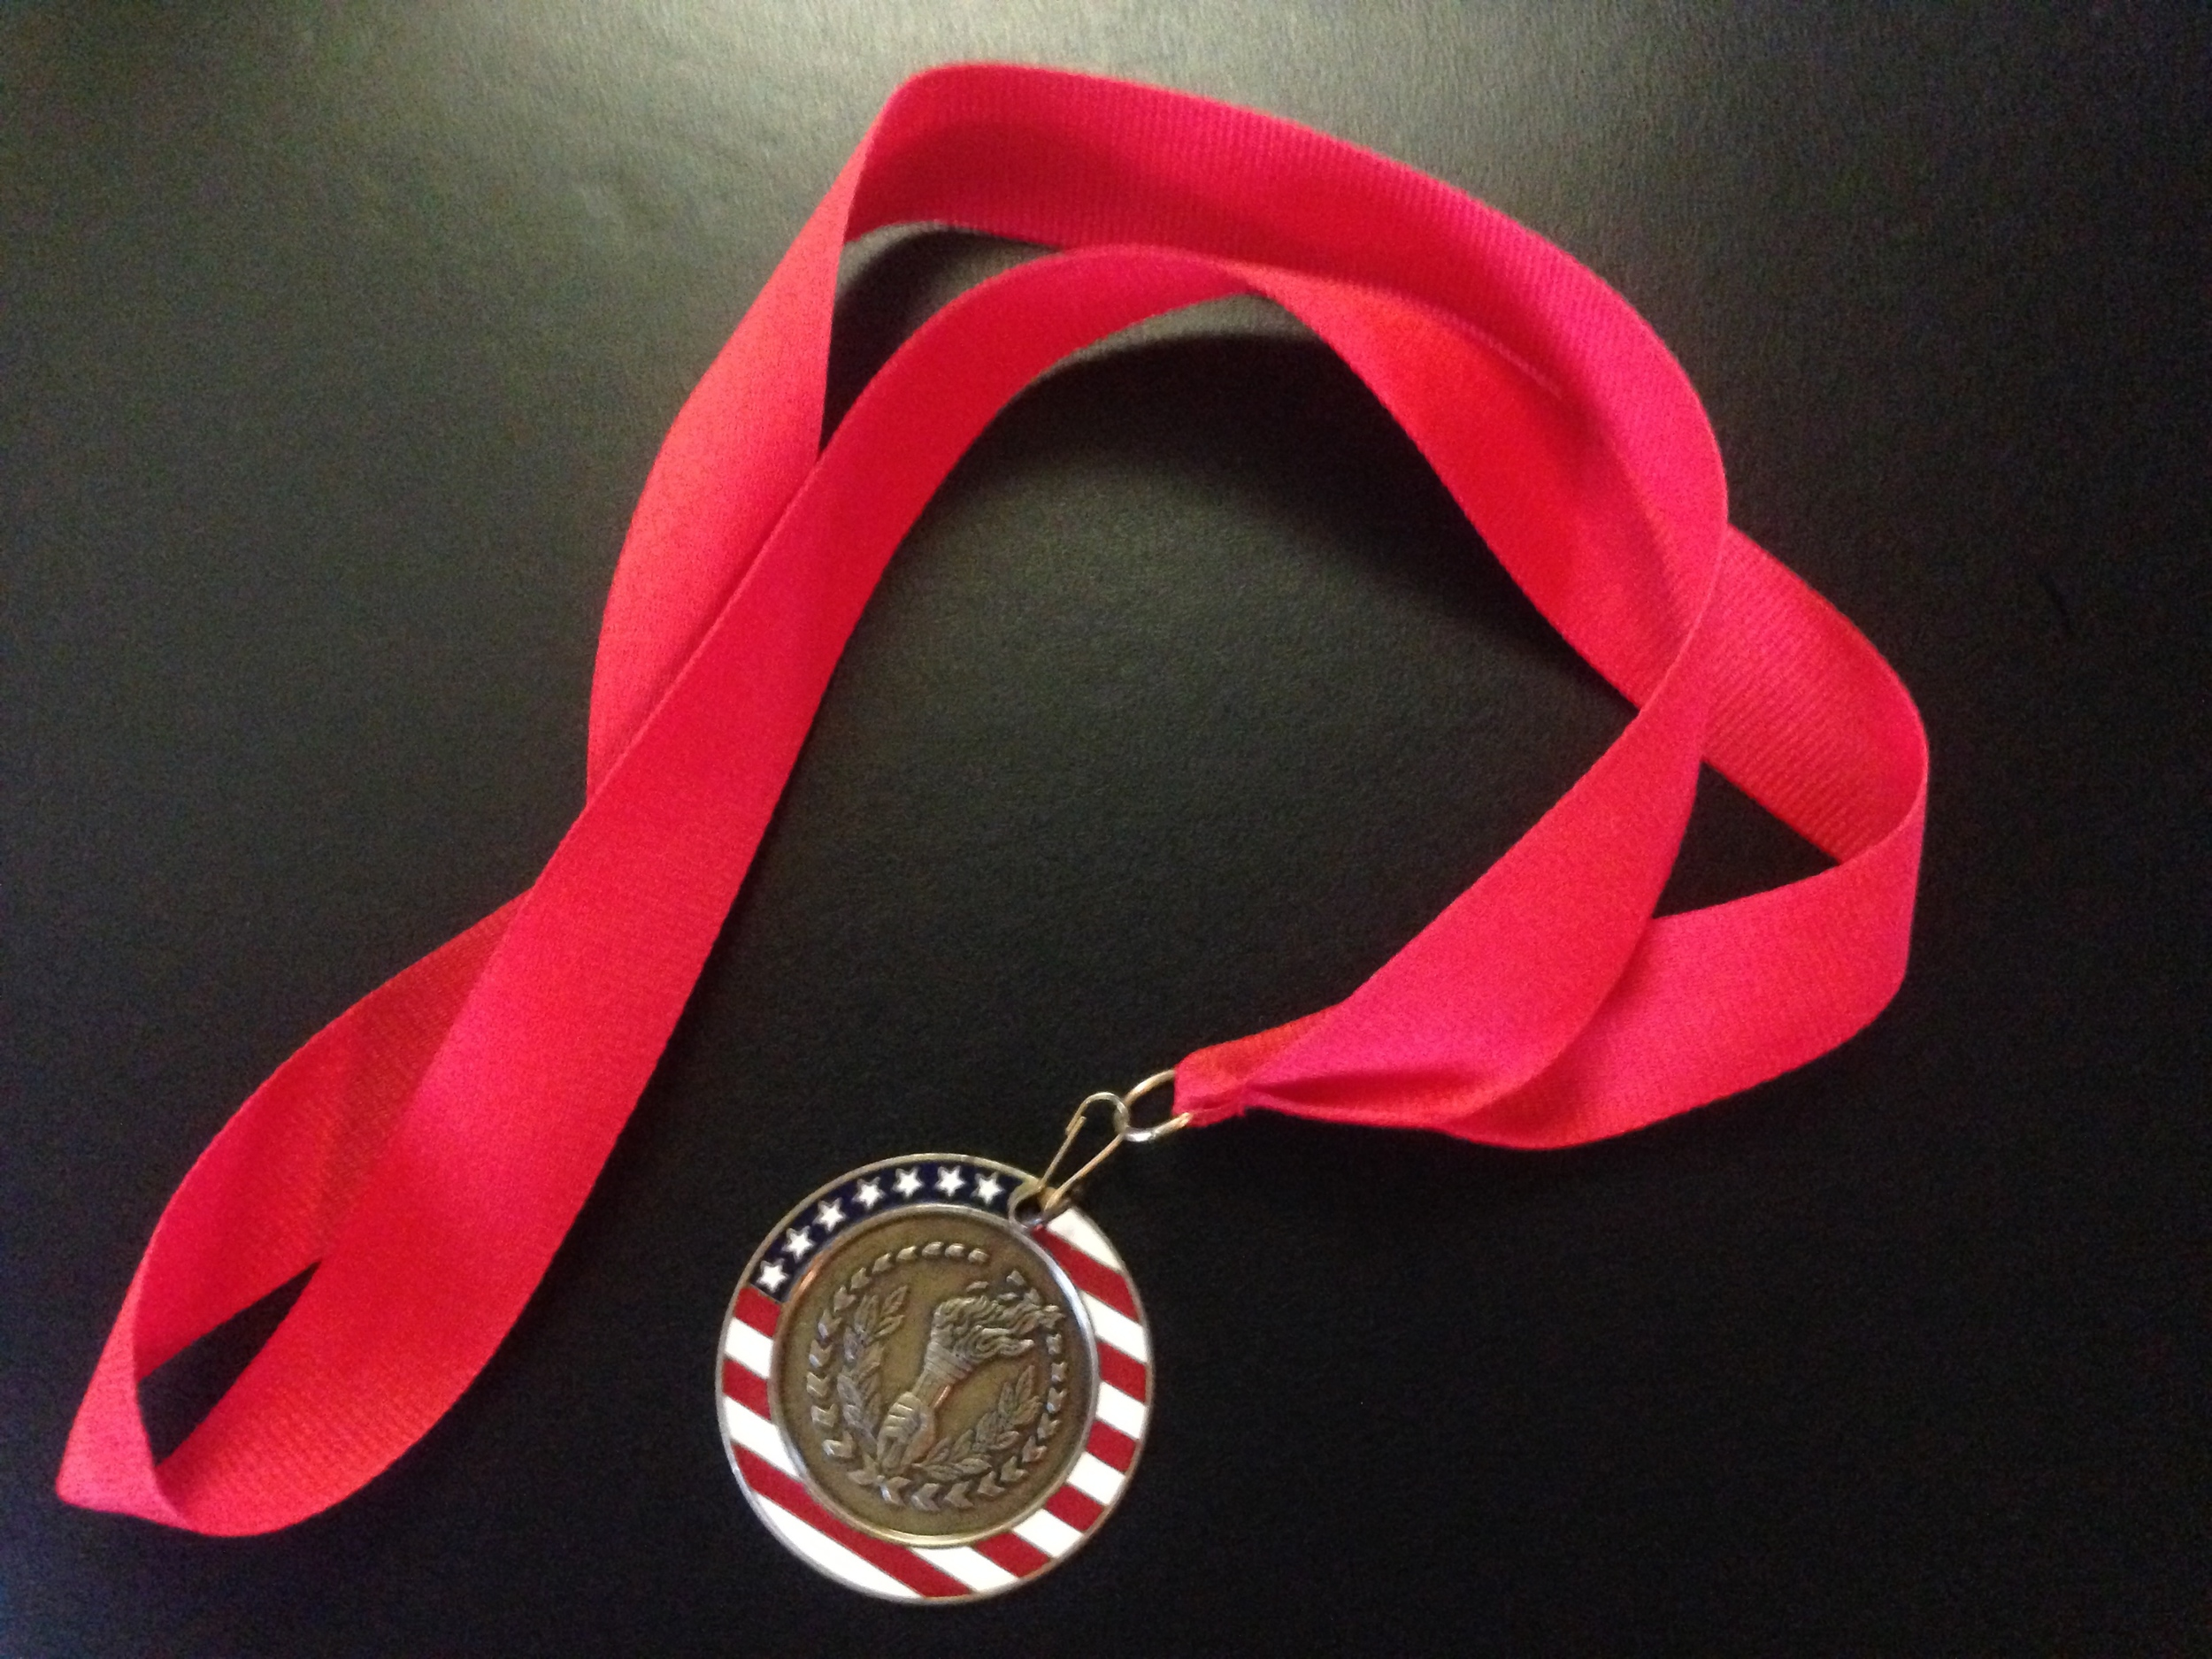 The medal's a nice perk, but it's how you get there that counts.